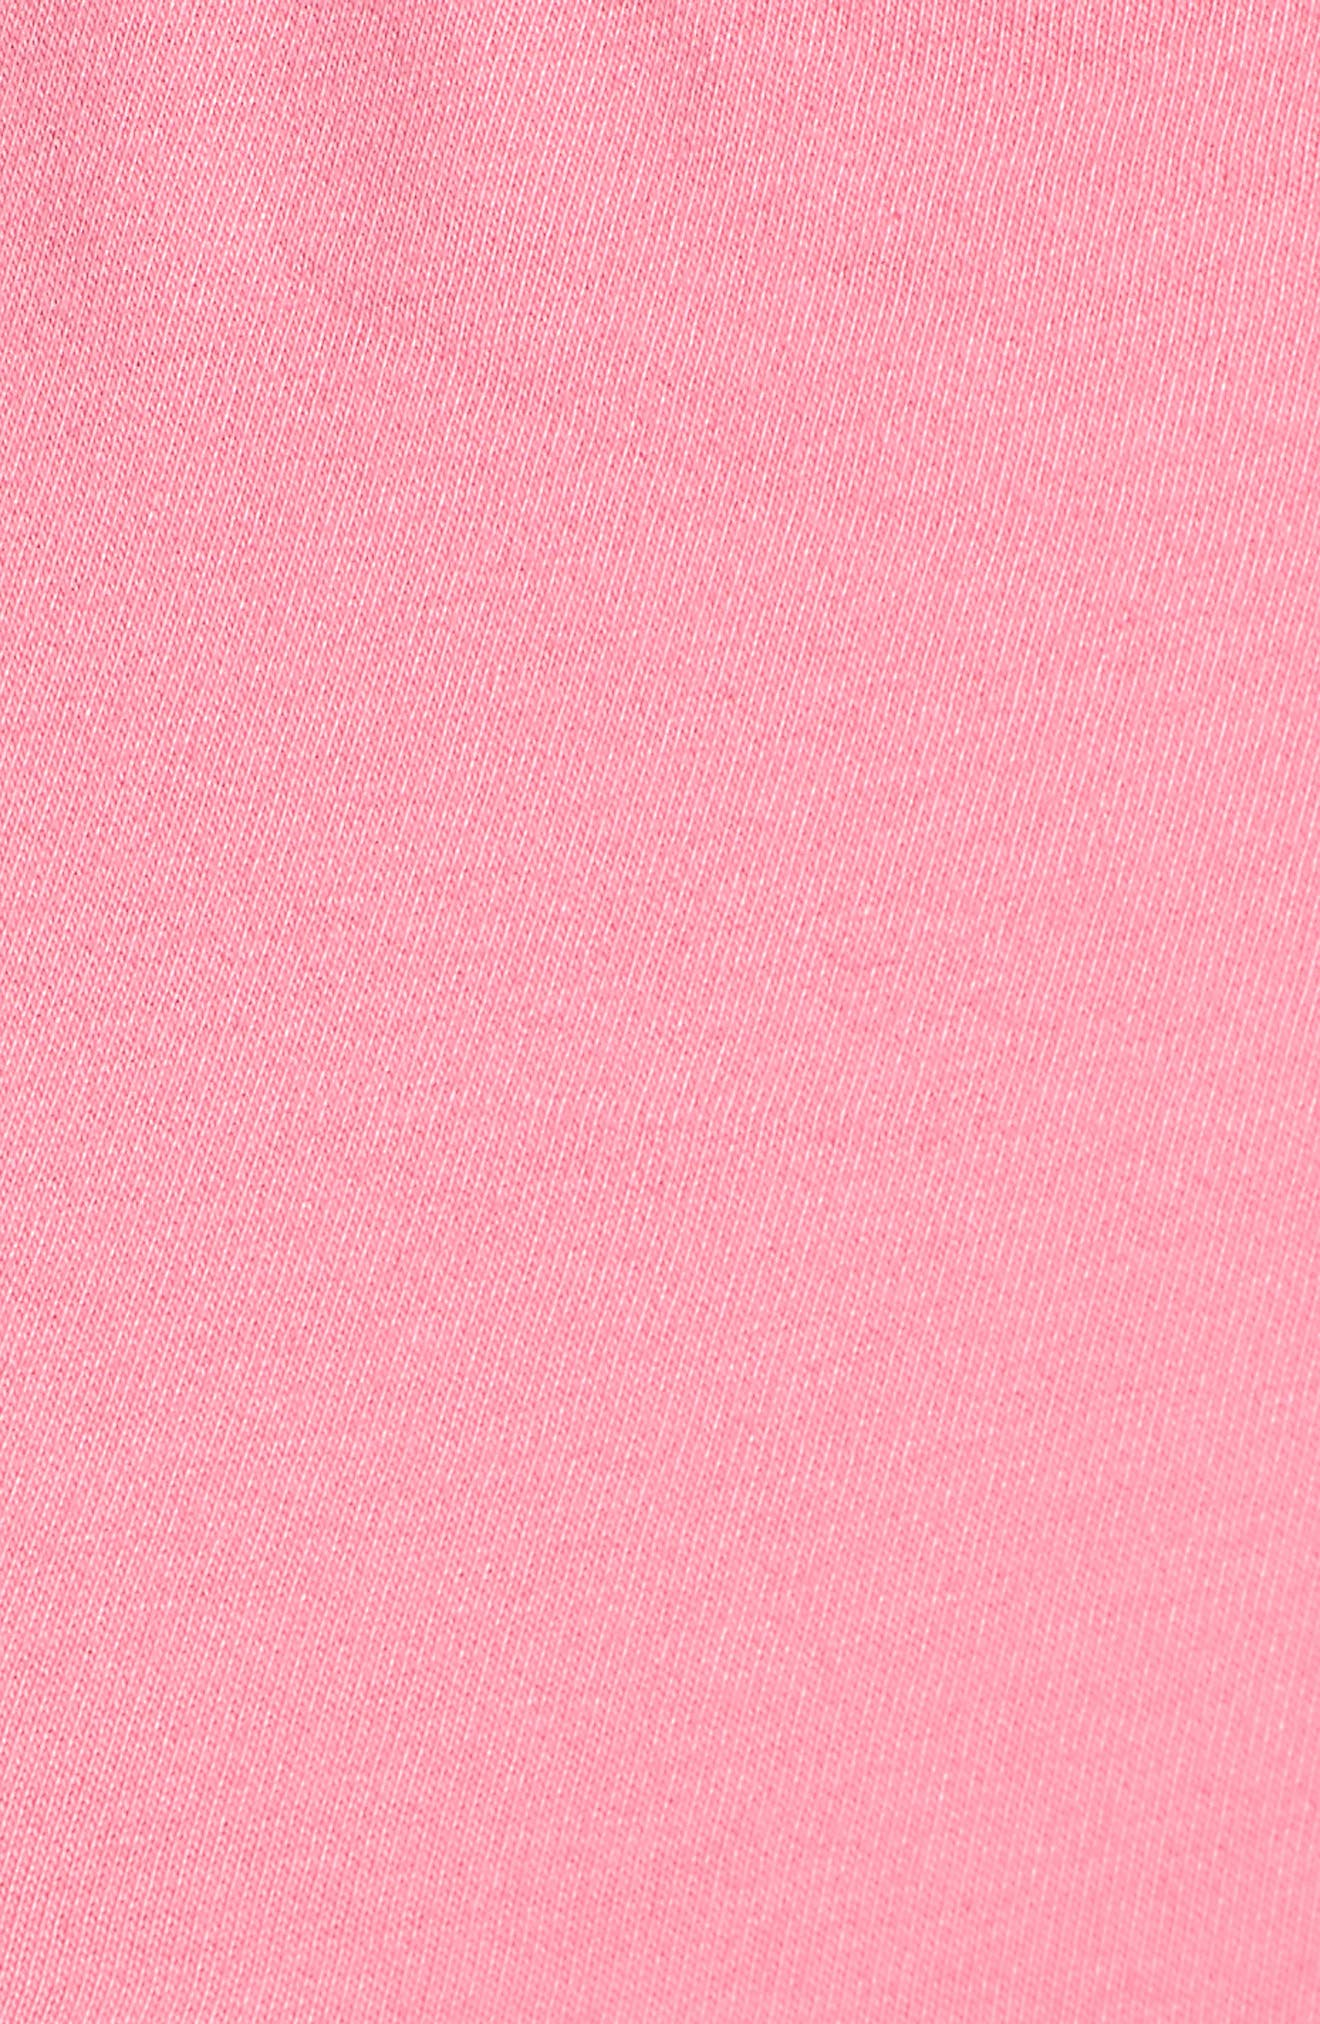 FENTY PUMA by Rihanna Crop Tee,                             Alternate thumbnail 6, color,                             Knockout Pink